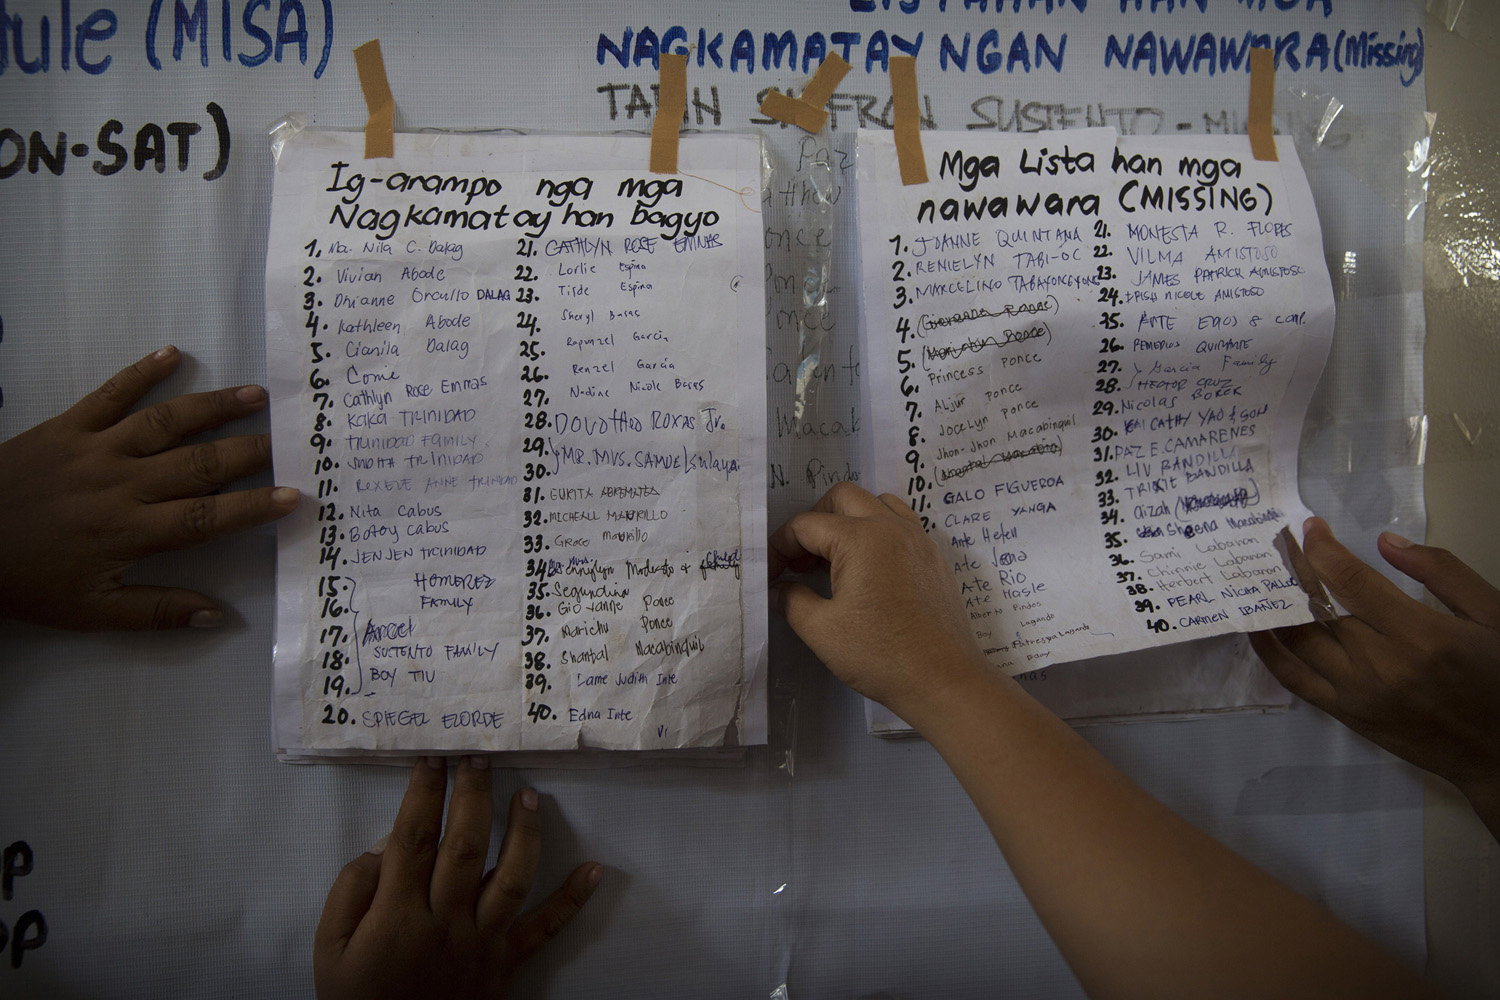 Relatives search a list of missing persons posted in Tacloban on Nov. 17, 2013.